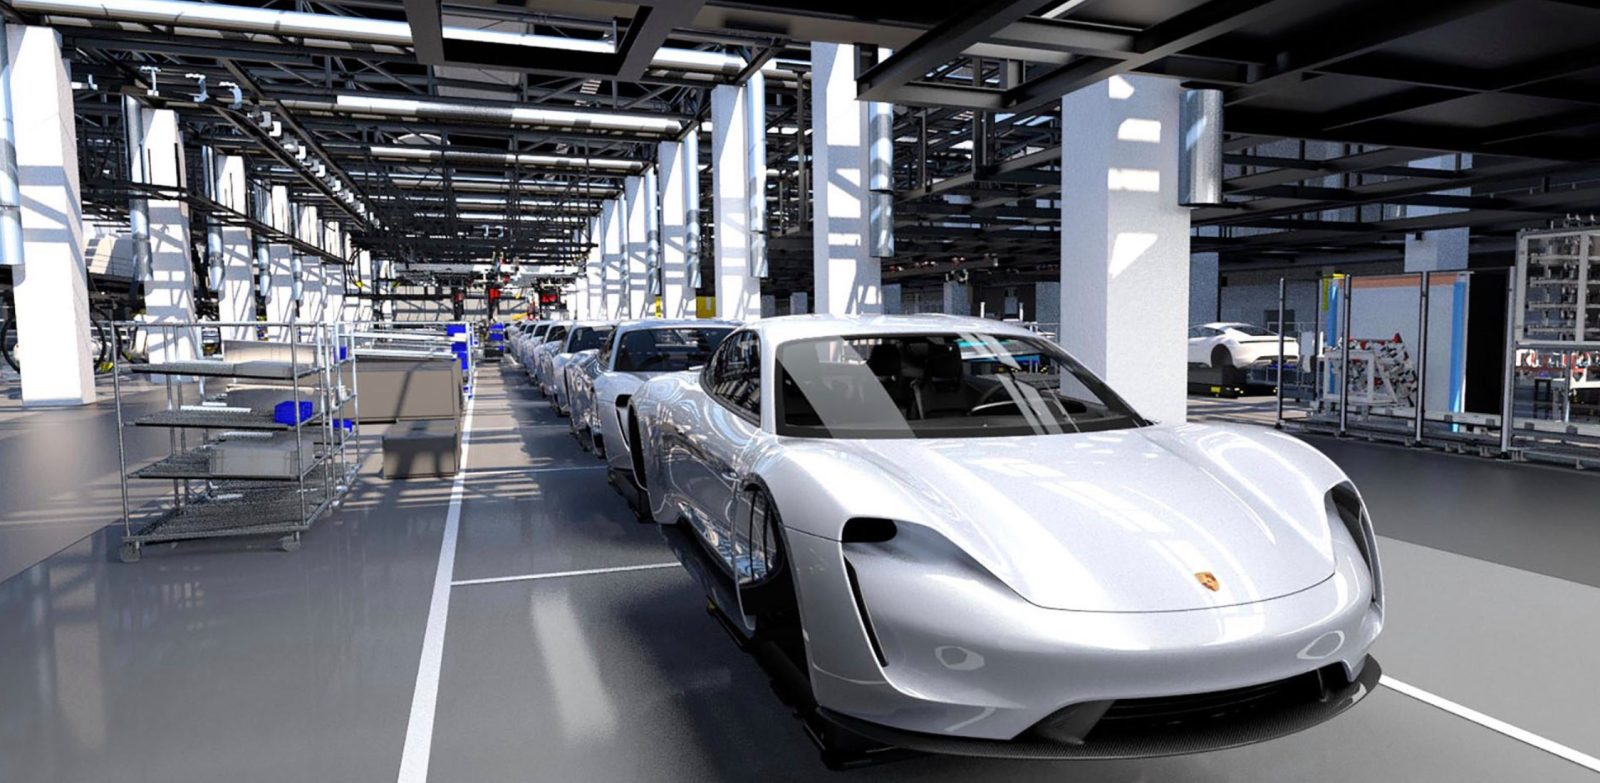 https://electrek.co/wp-content/uploads/sites/3/2018/10/pOrsche-Taycan-production-hero.jpg?quality=82&strip=all&w=1600